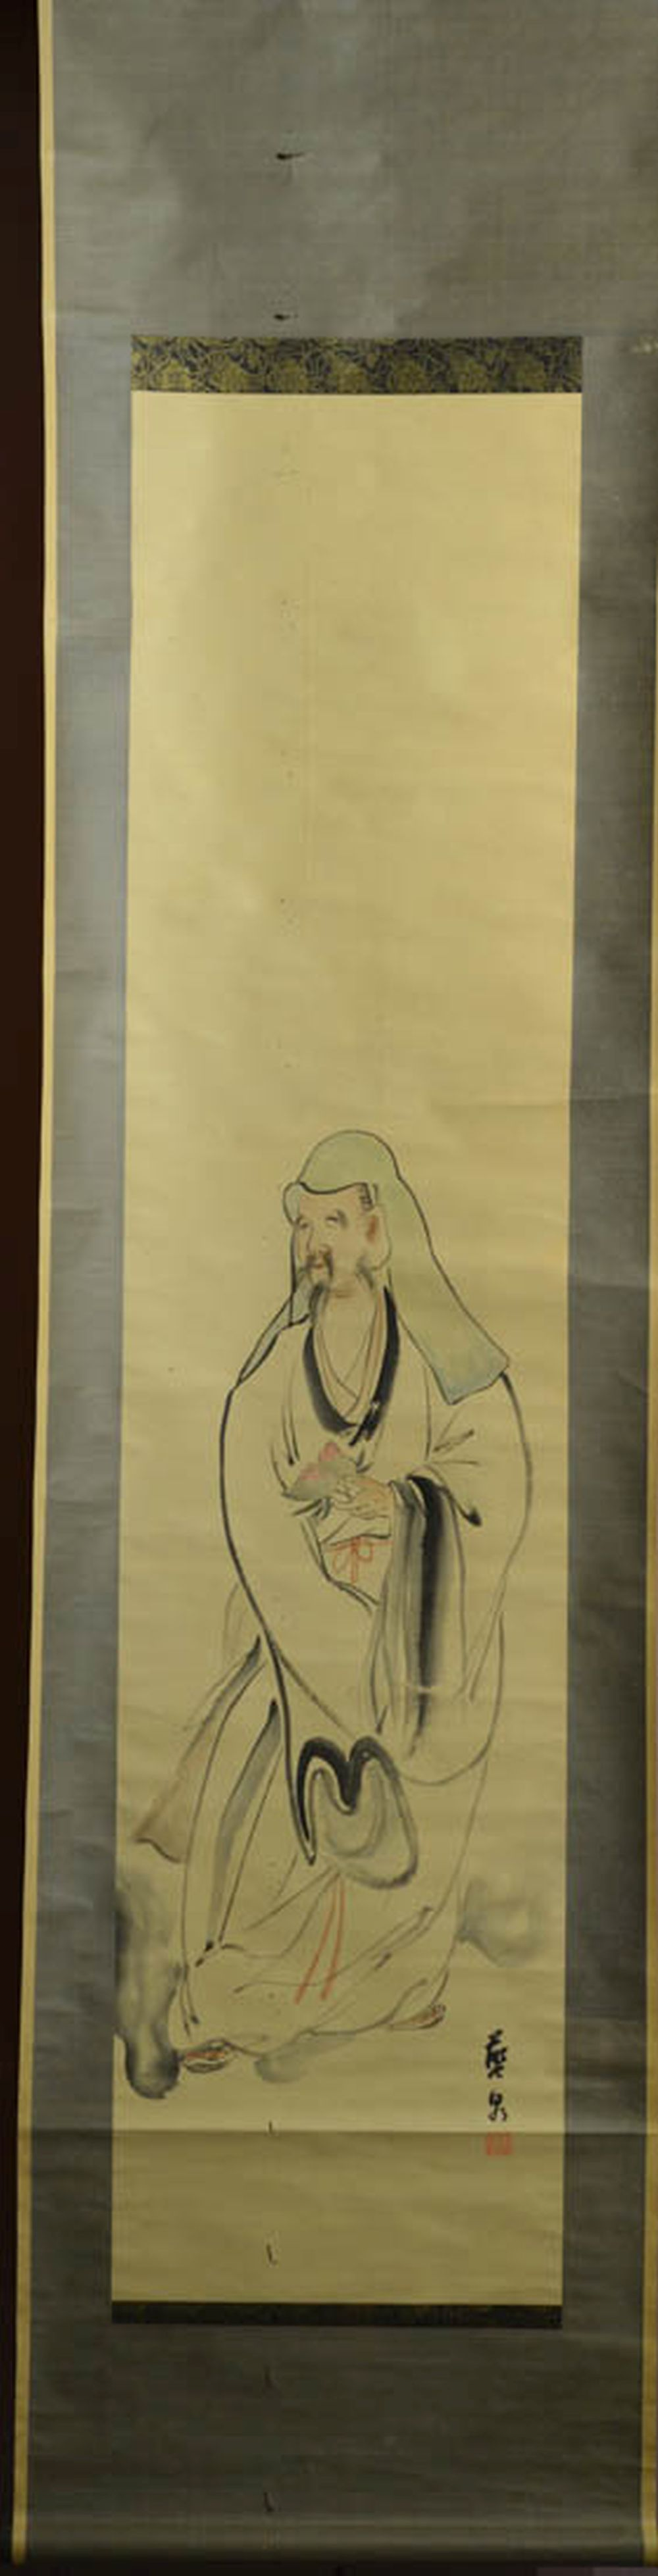 Japanese Water Color Scroll Painting - Scholar with Peach